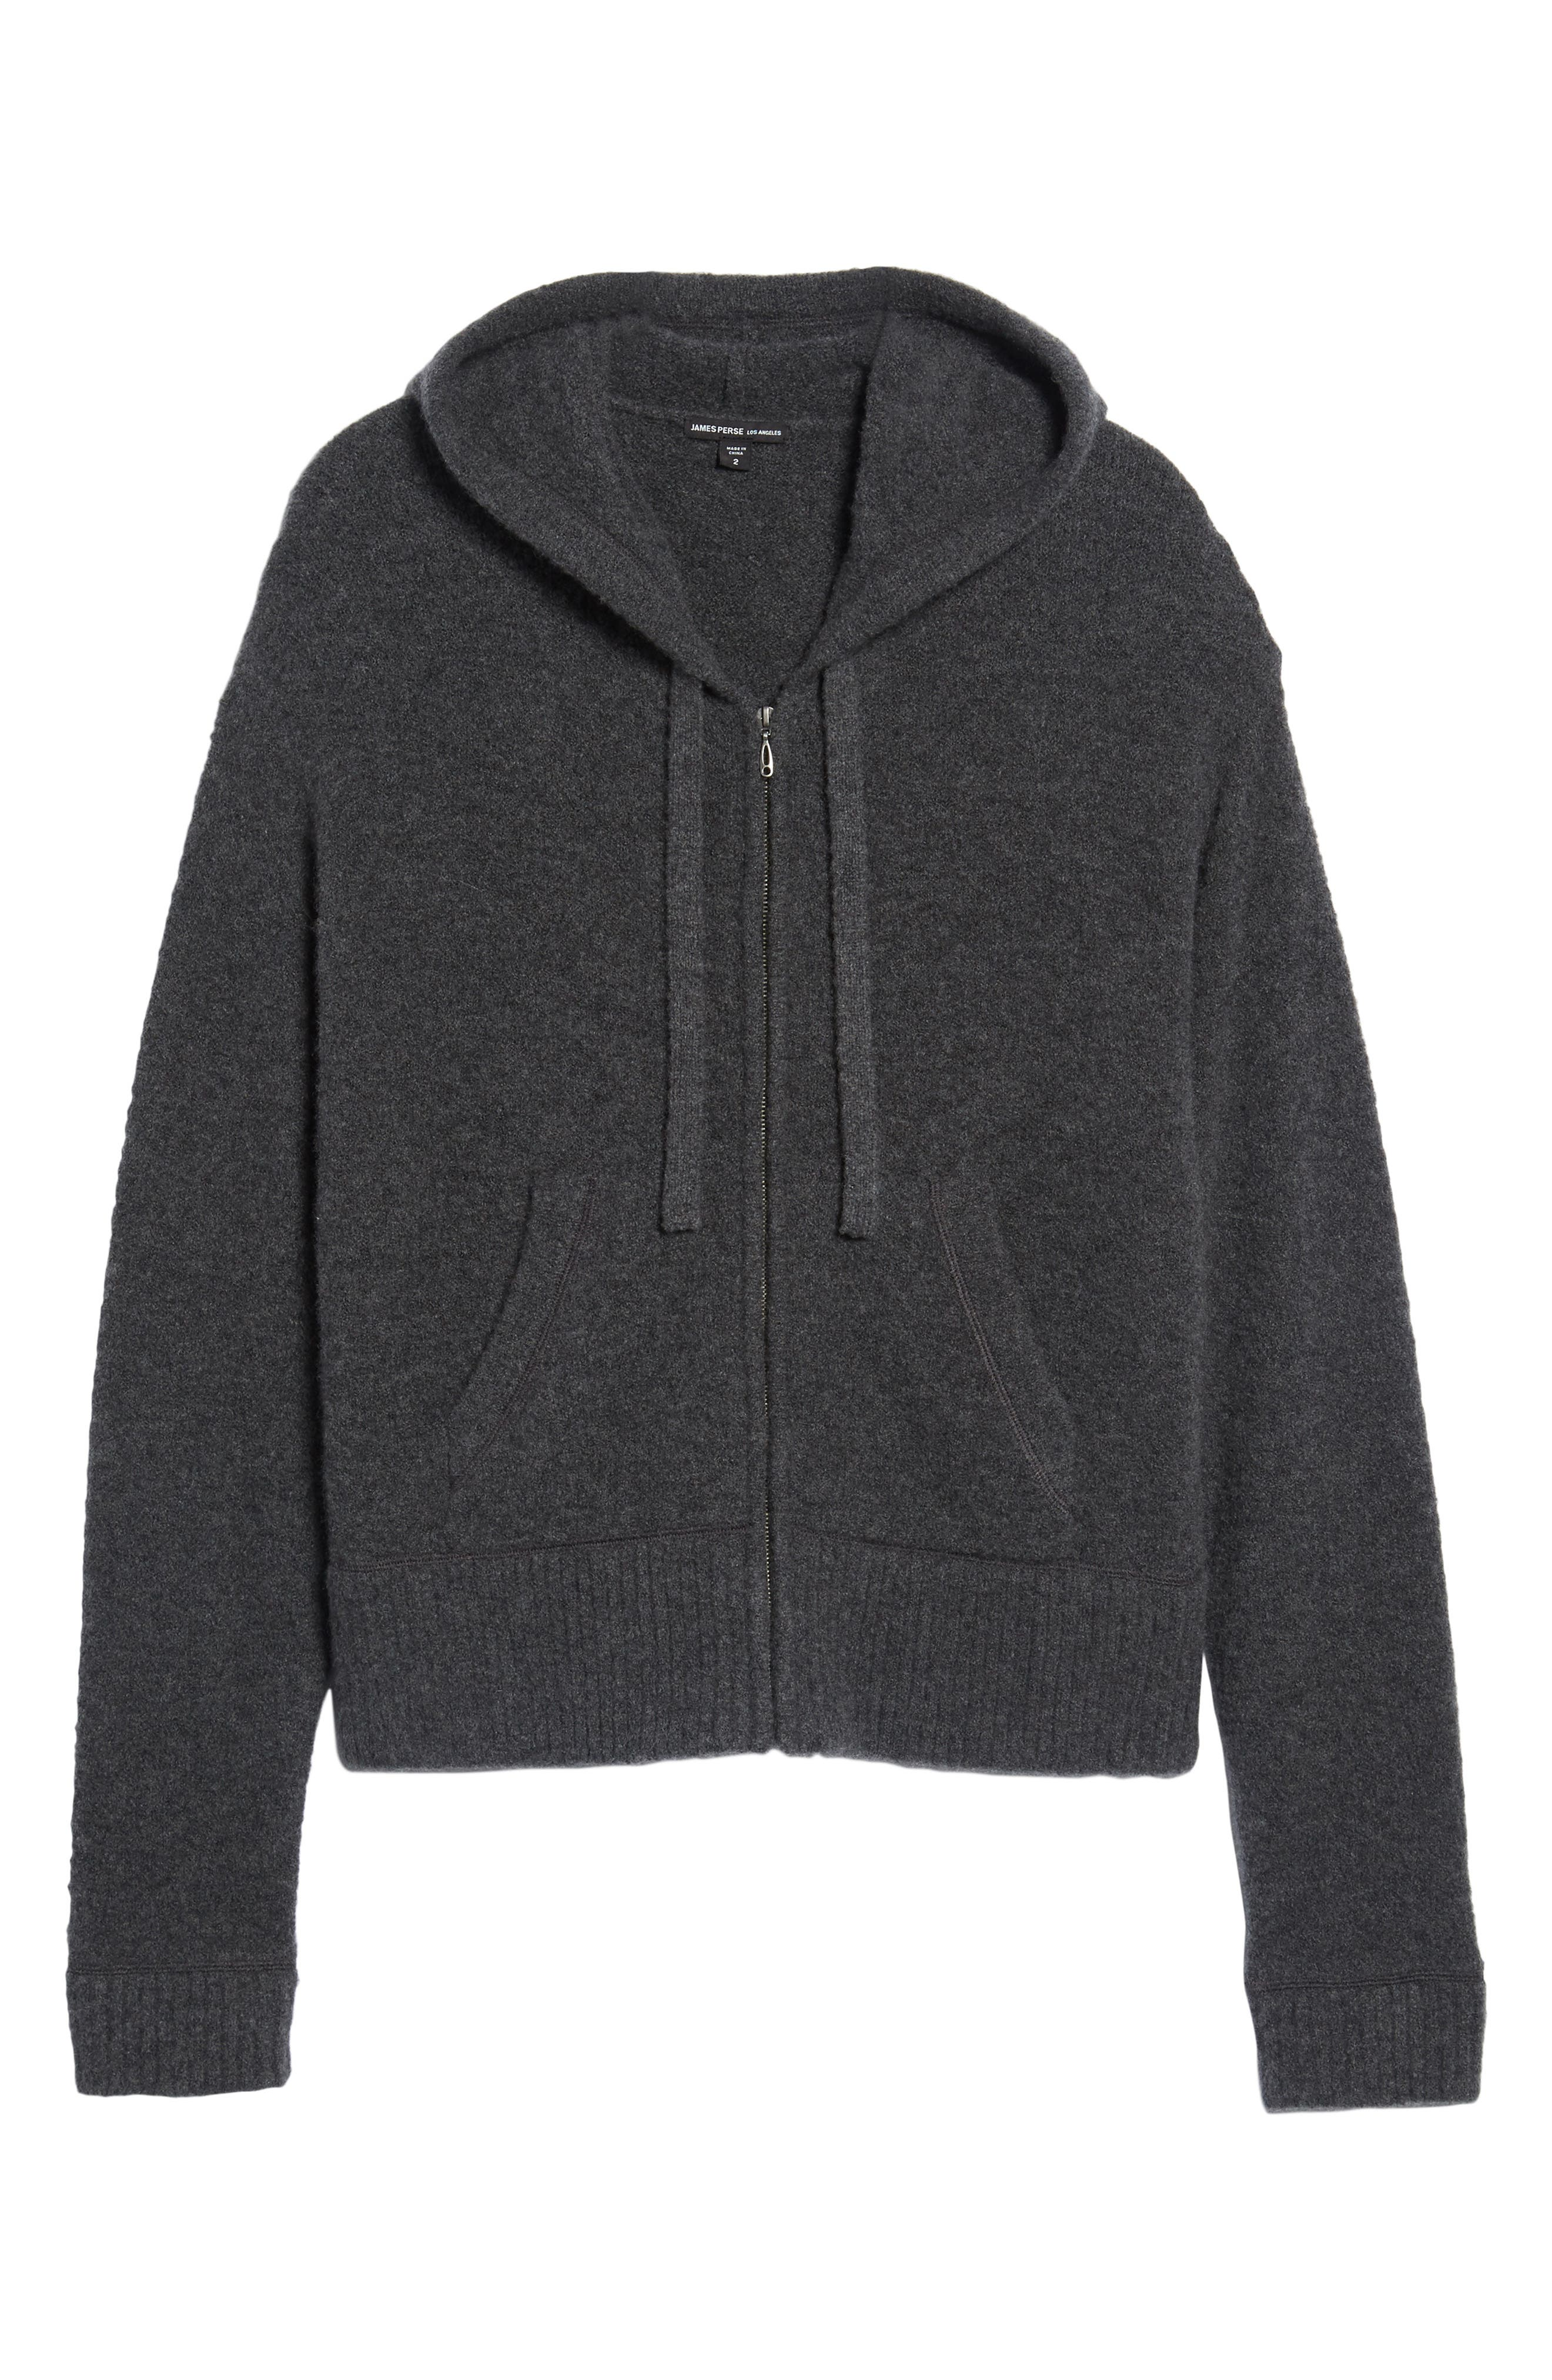 Brushed Cashmere Zip Hoodie,                             Alternate thumbnail 6, color,                             Charcoal